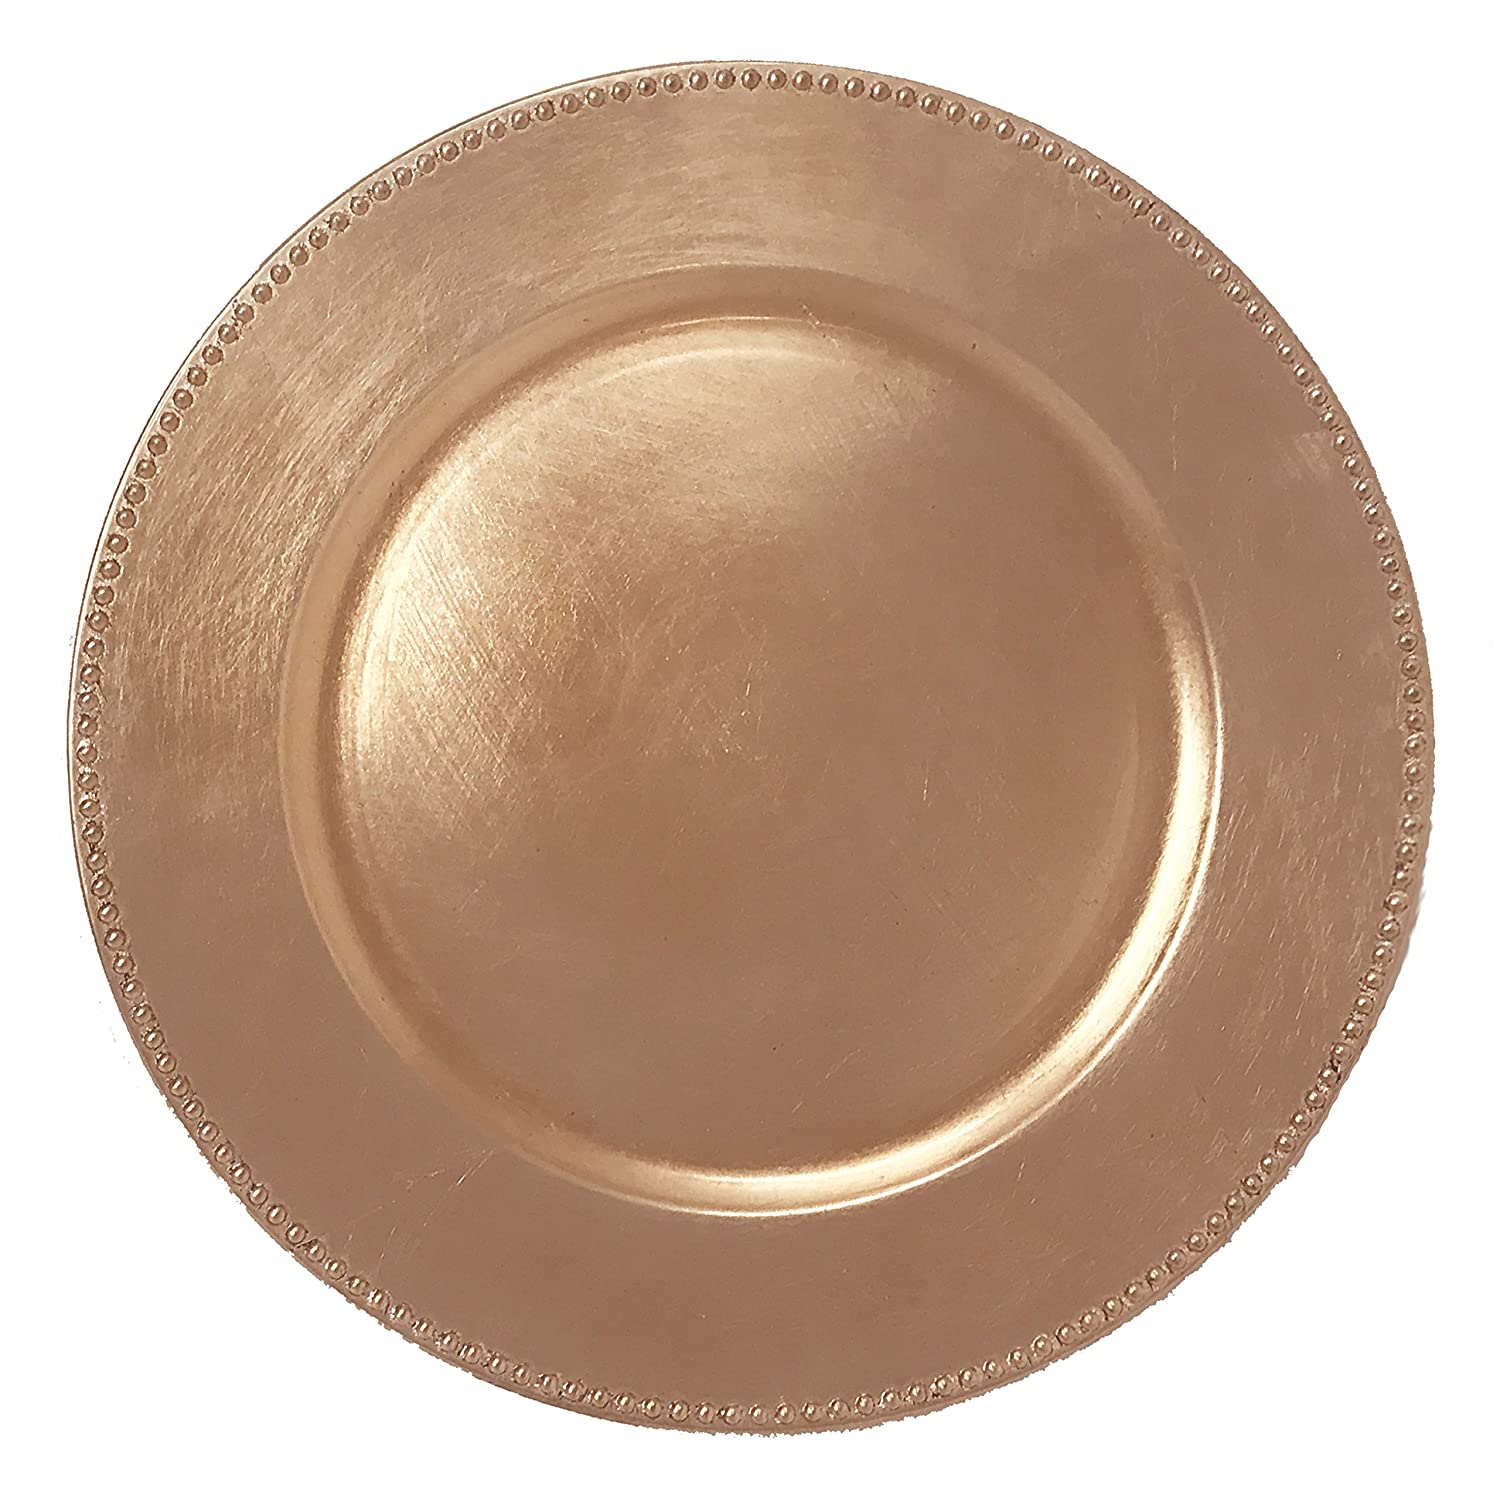 AK-Trading - Set of 12, Premium Finest Quality Party Plate Chargers, 13-Inch Round, Copper Brushed Design AK TRADING CO.